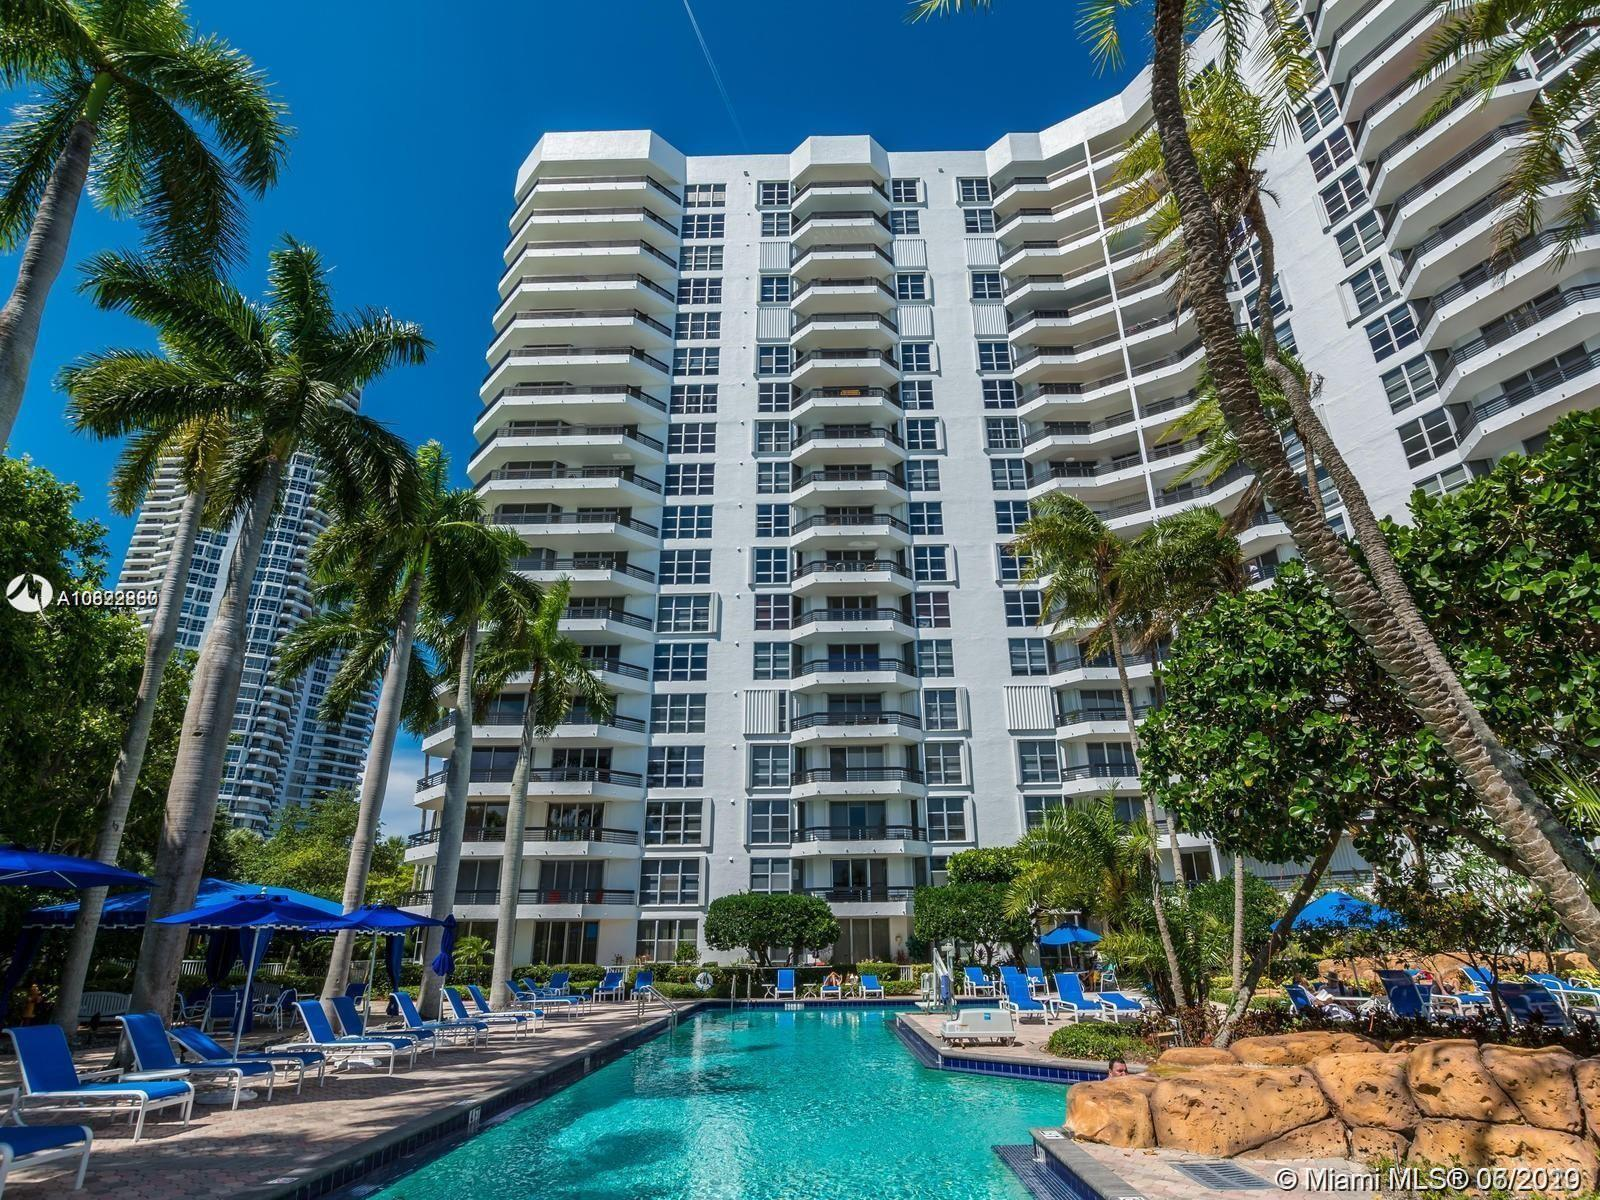 TOWER 300 MYSTIC POINTE LOCATED IN THE HEART OF AVENTURA!! PRICED TO SELL. UNIT FEATURES SOME OCEAN